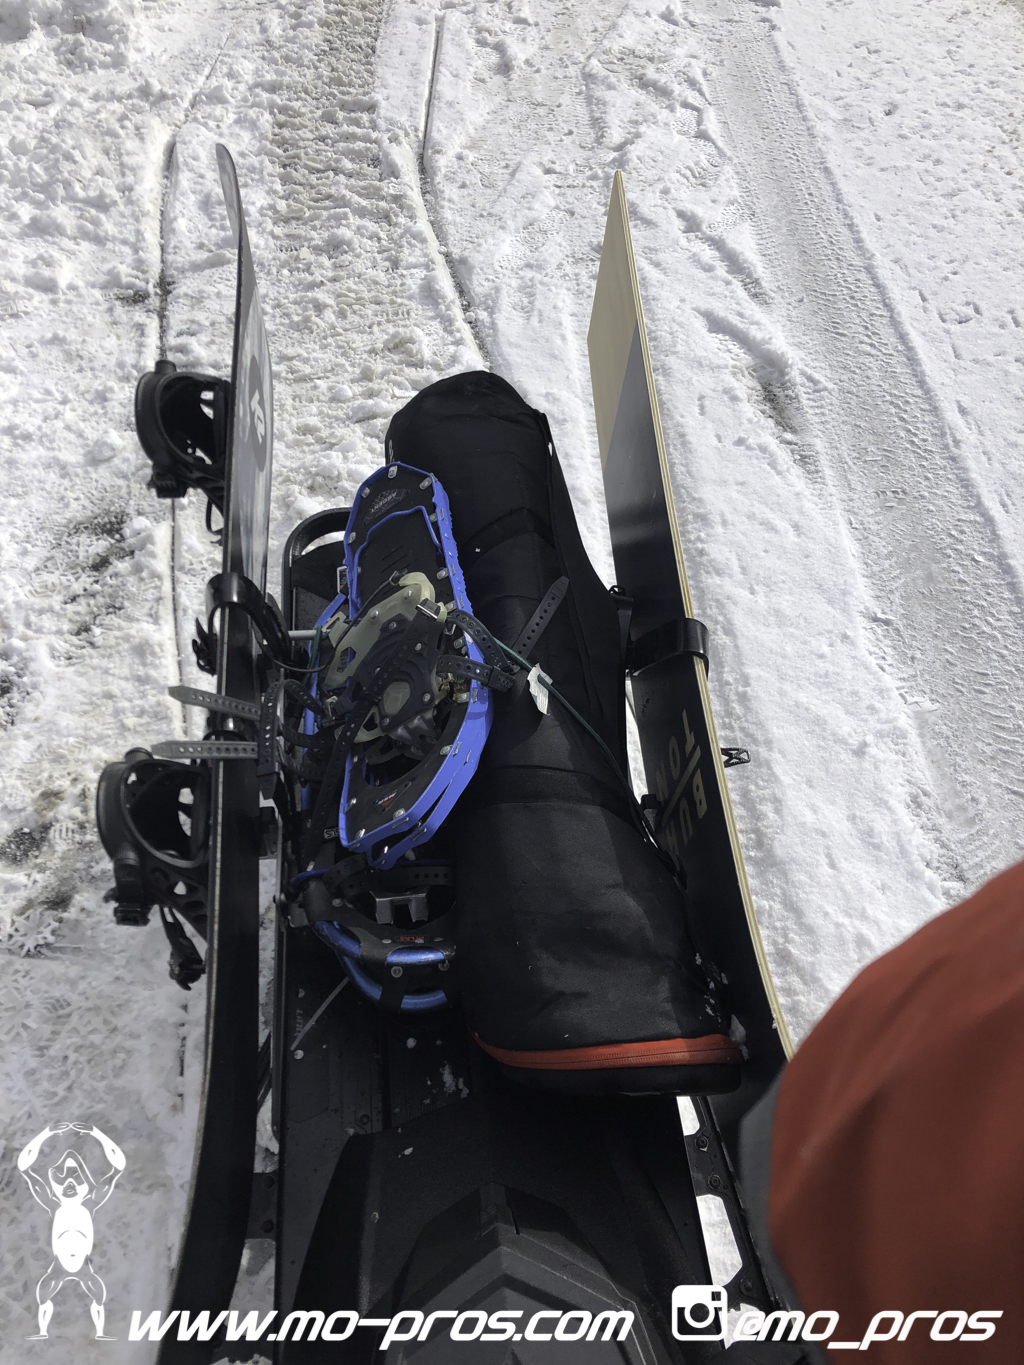 9_Snowbike_Timbersled Rack_Tsaina Rack_CFR rack_Cheetah Factory Racing_Snowboard rack_snowboard_snowmobile bag_Snowmobile_timbersled bag_gas Rack_Gear_Gun Rack_LinQ Snowboard Ski_Ski_Snowboarding_Tim.jpg